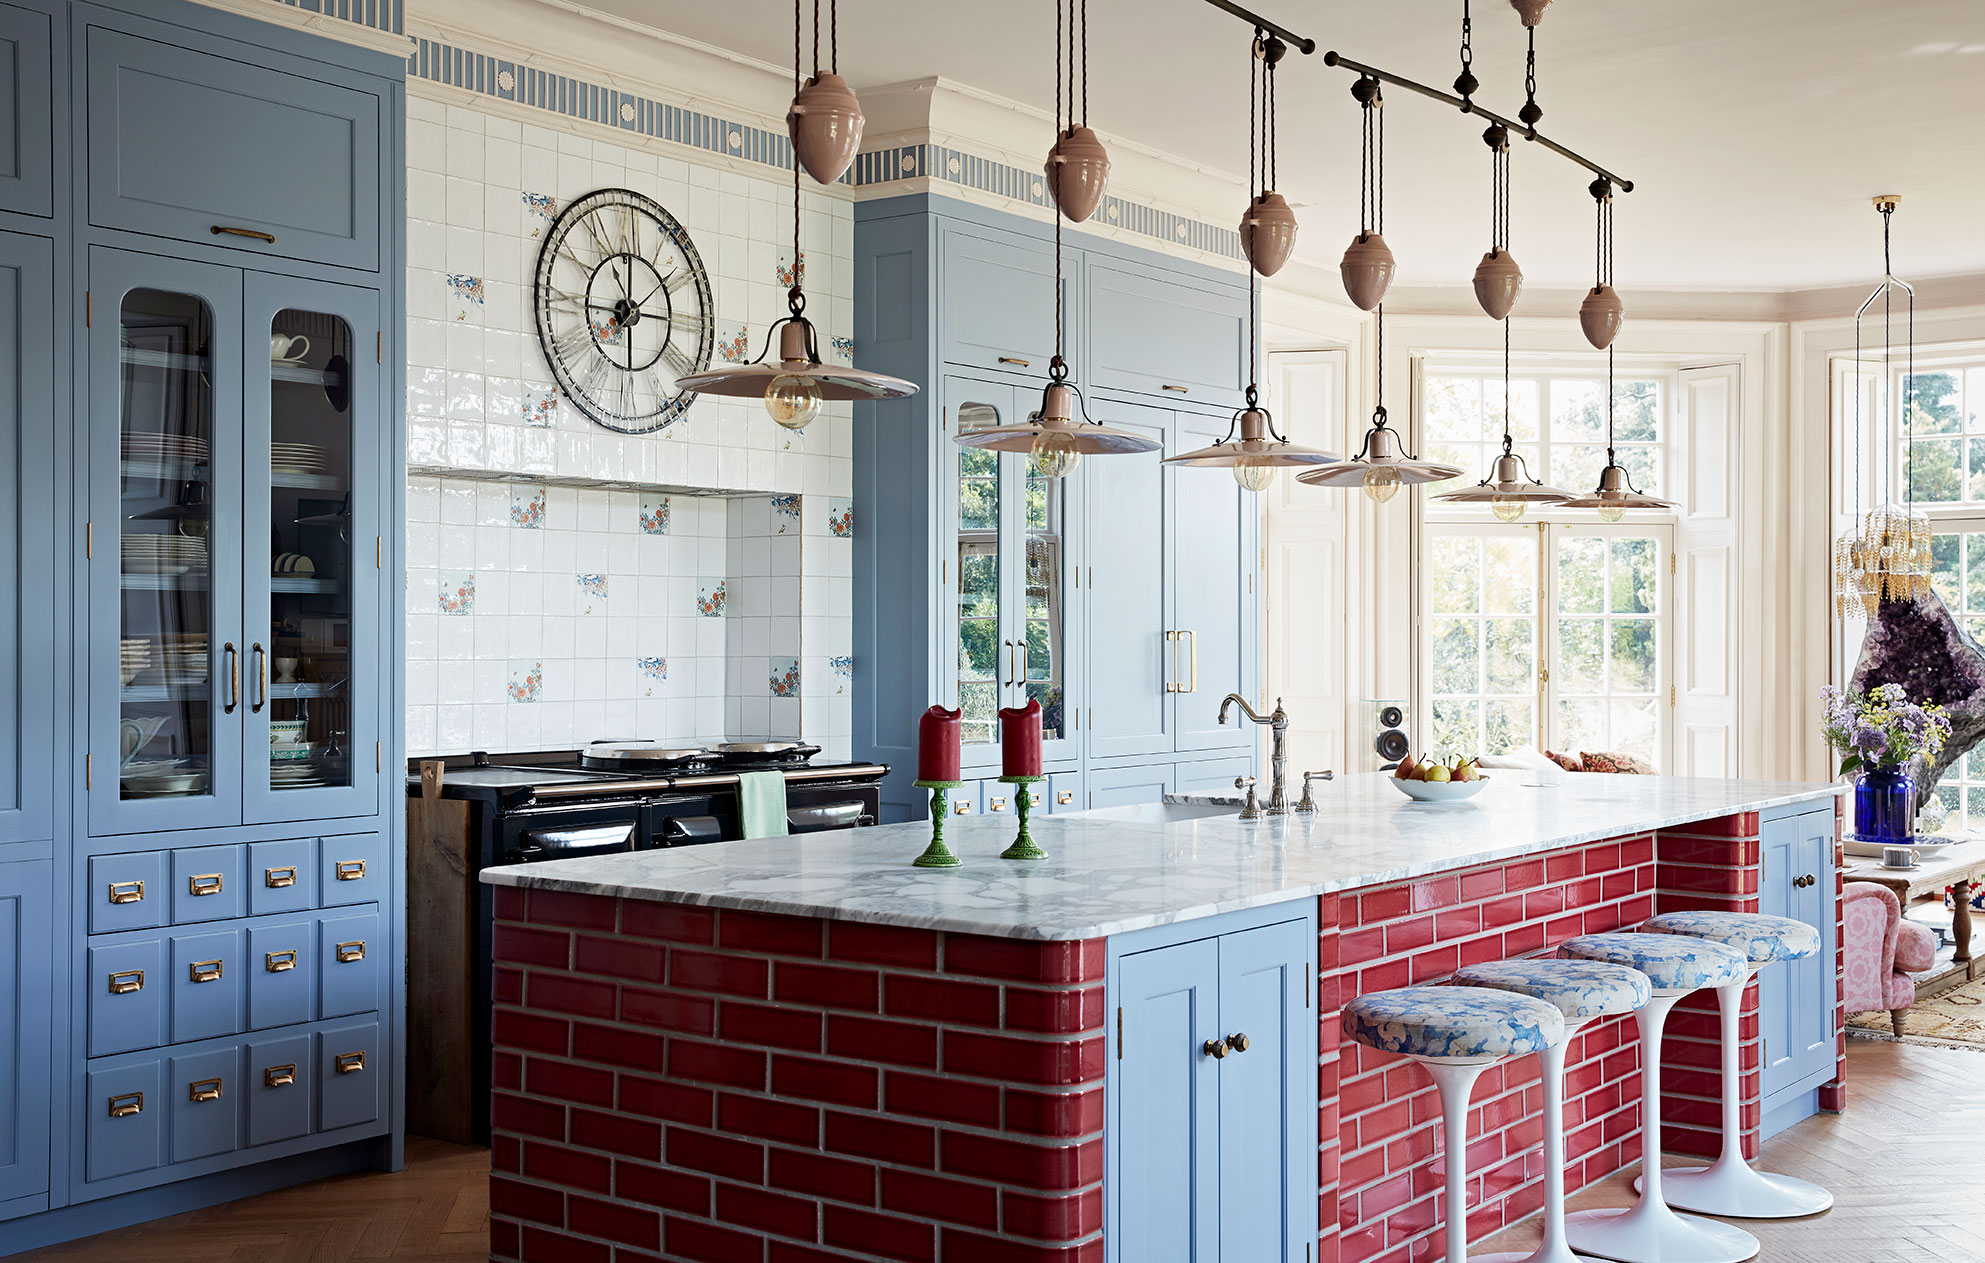 Bespoke interior designed kitchen with maroon tiles and cornflower blue cupboards